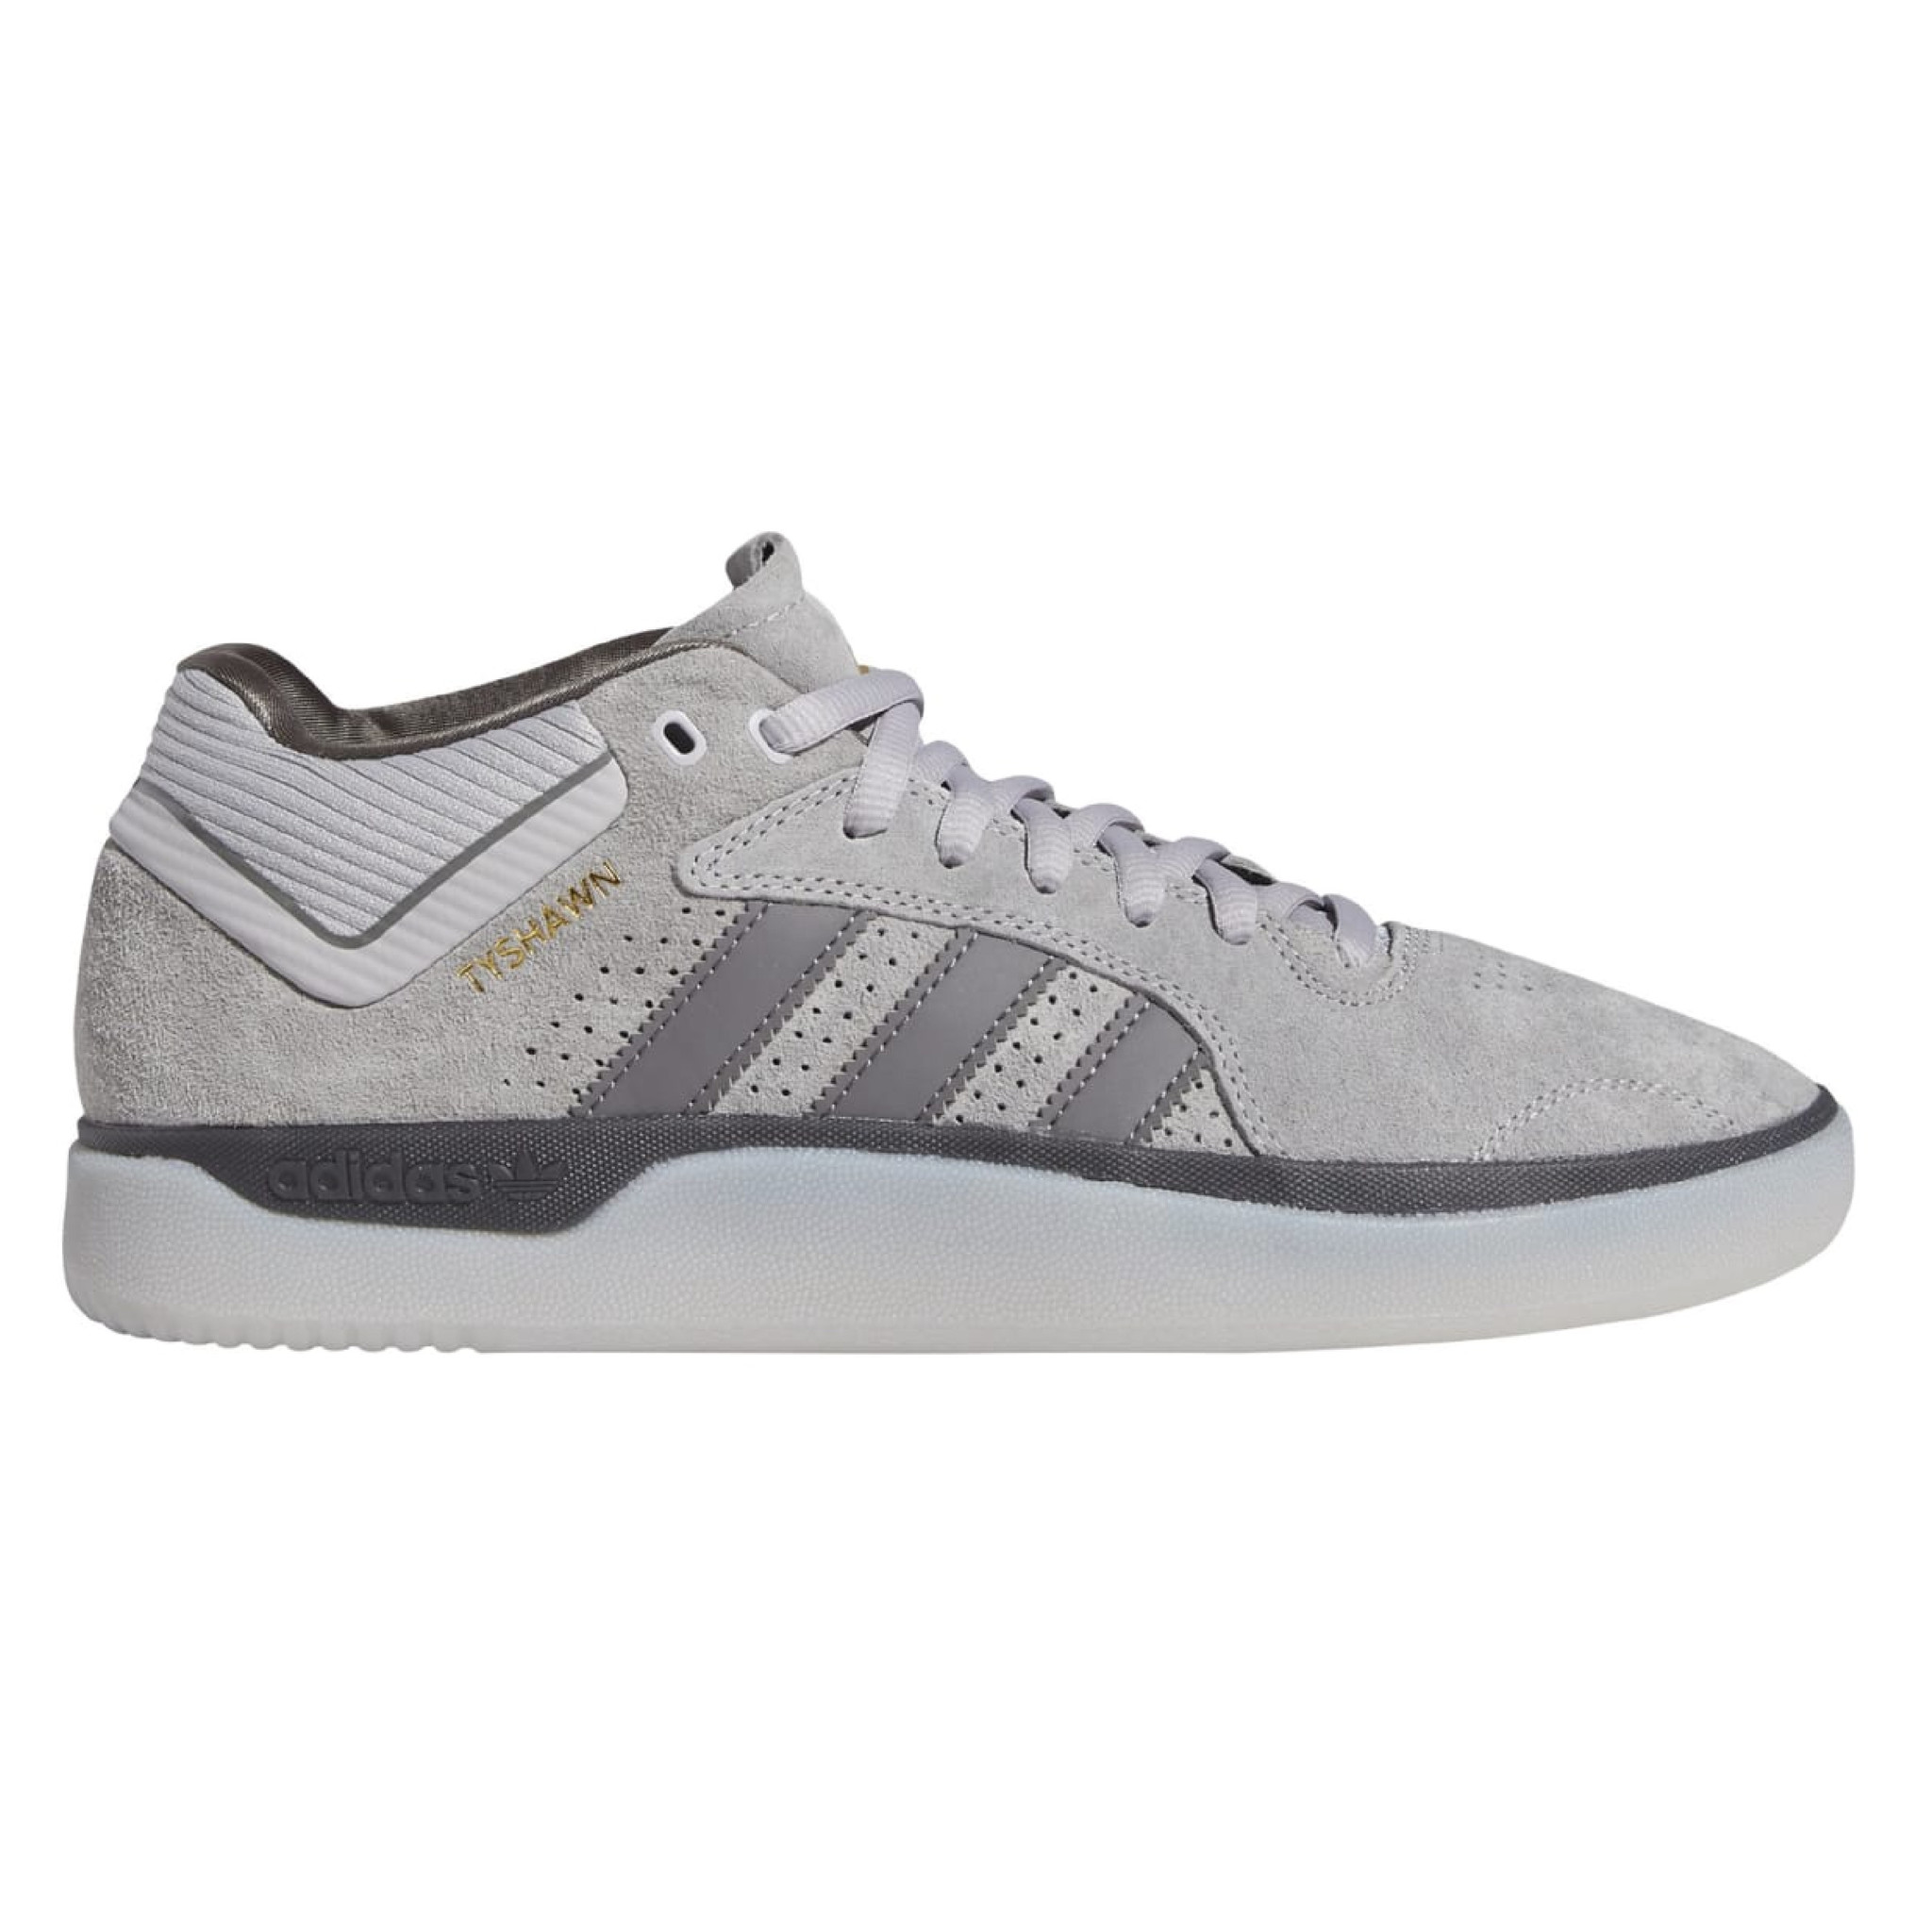 ADIDAS ADIDAS TYSHAWN LIGHT GRANITE / GRANITE